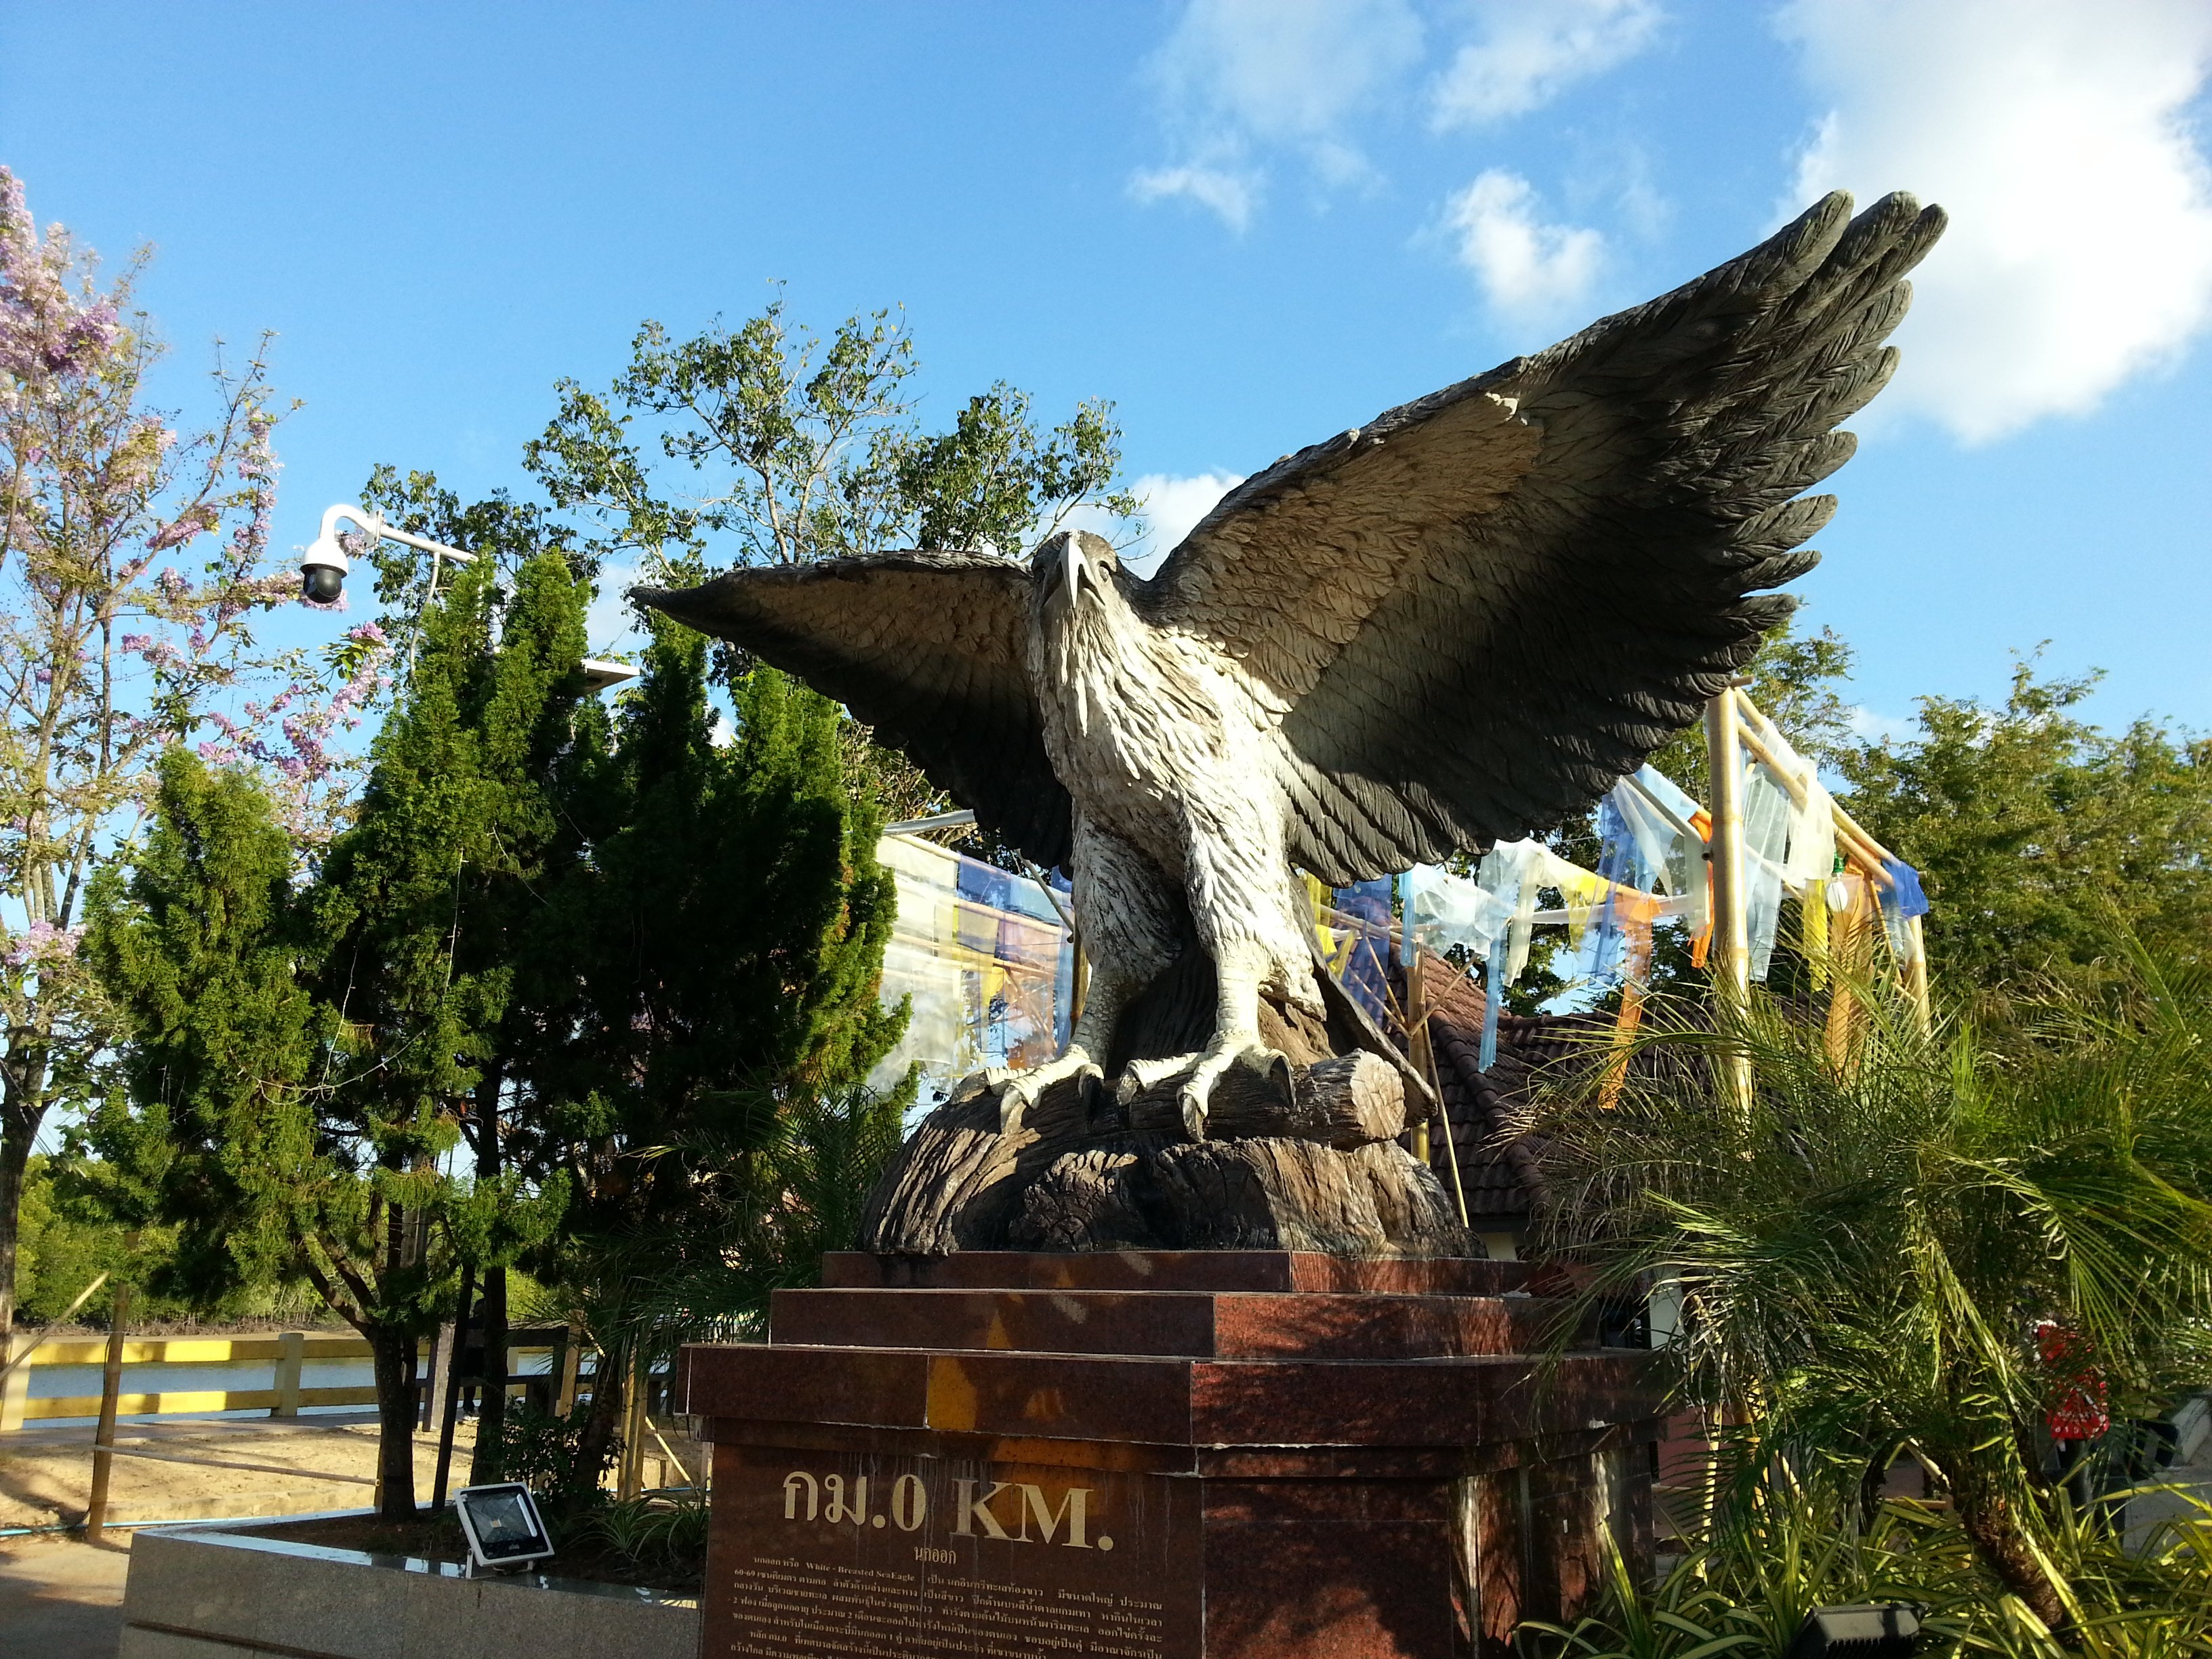 The sea eagle is the symbol of Krabi Municipality